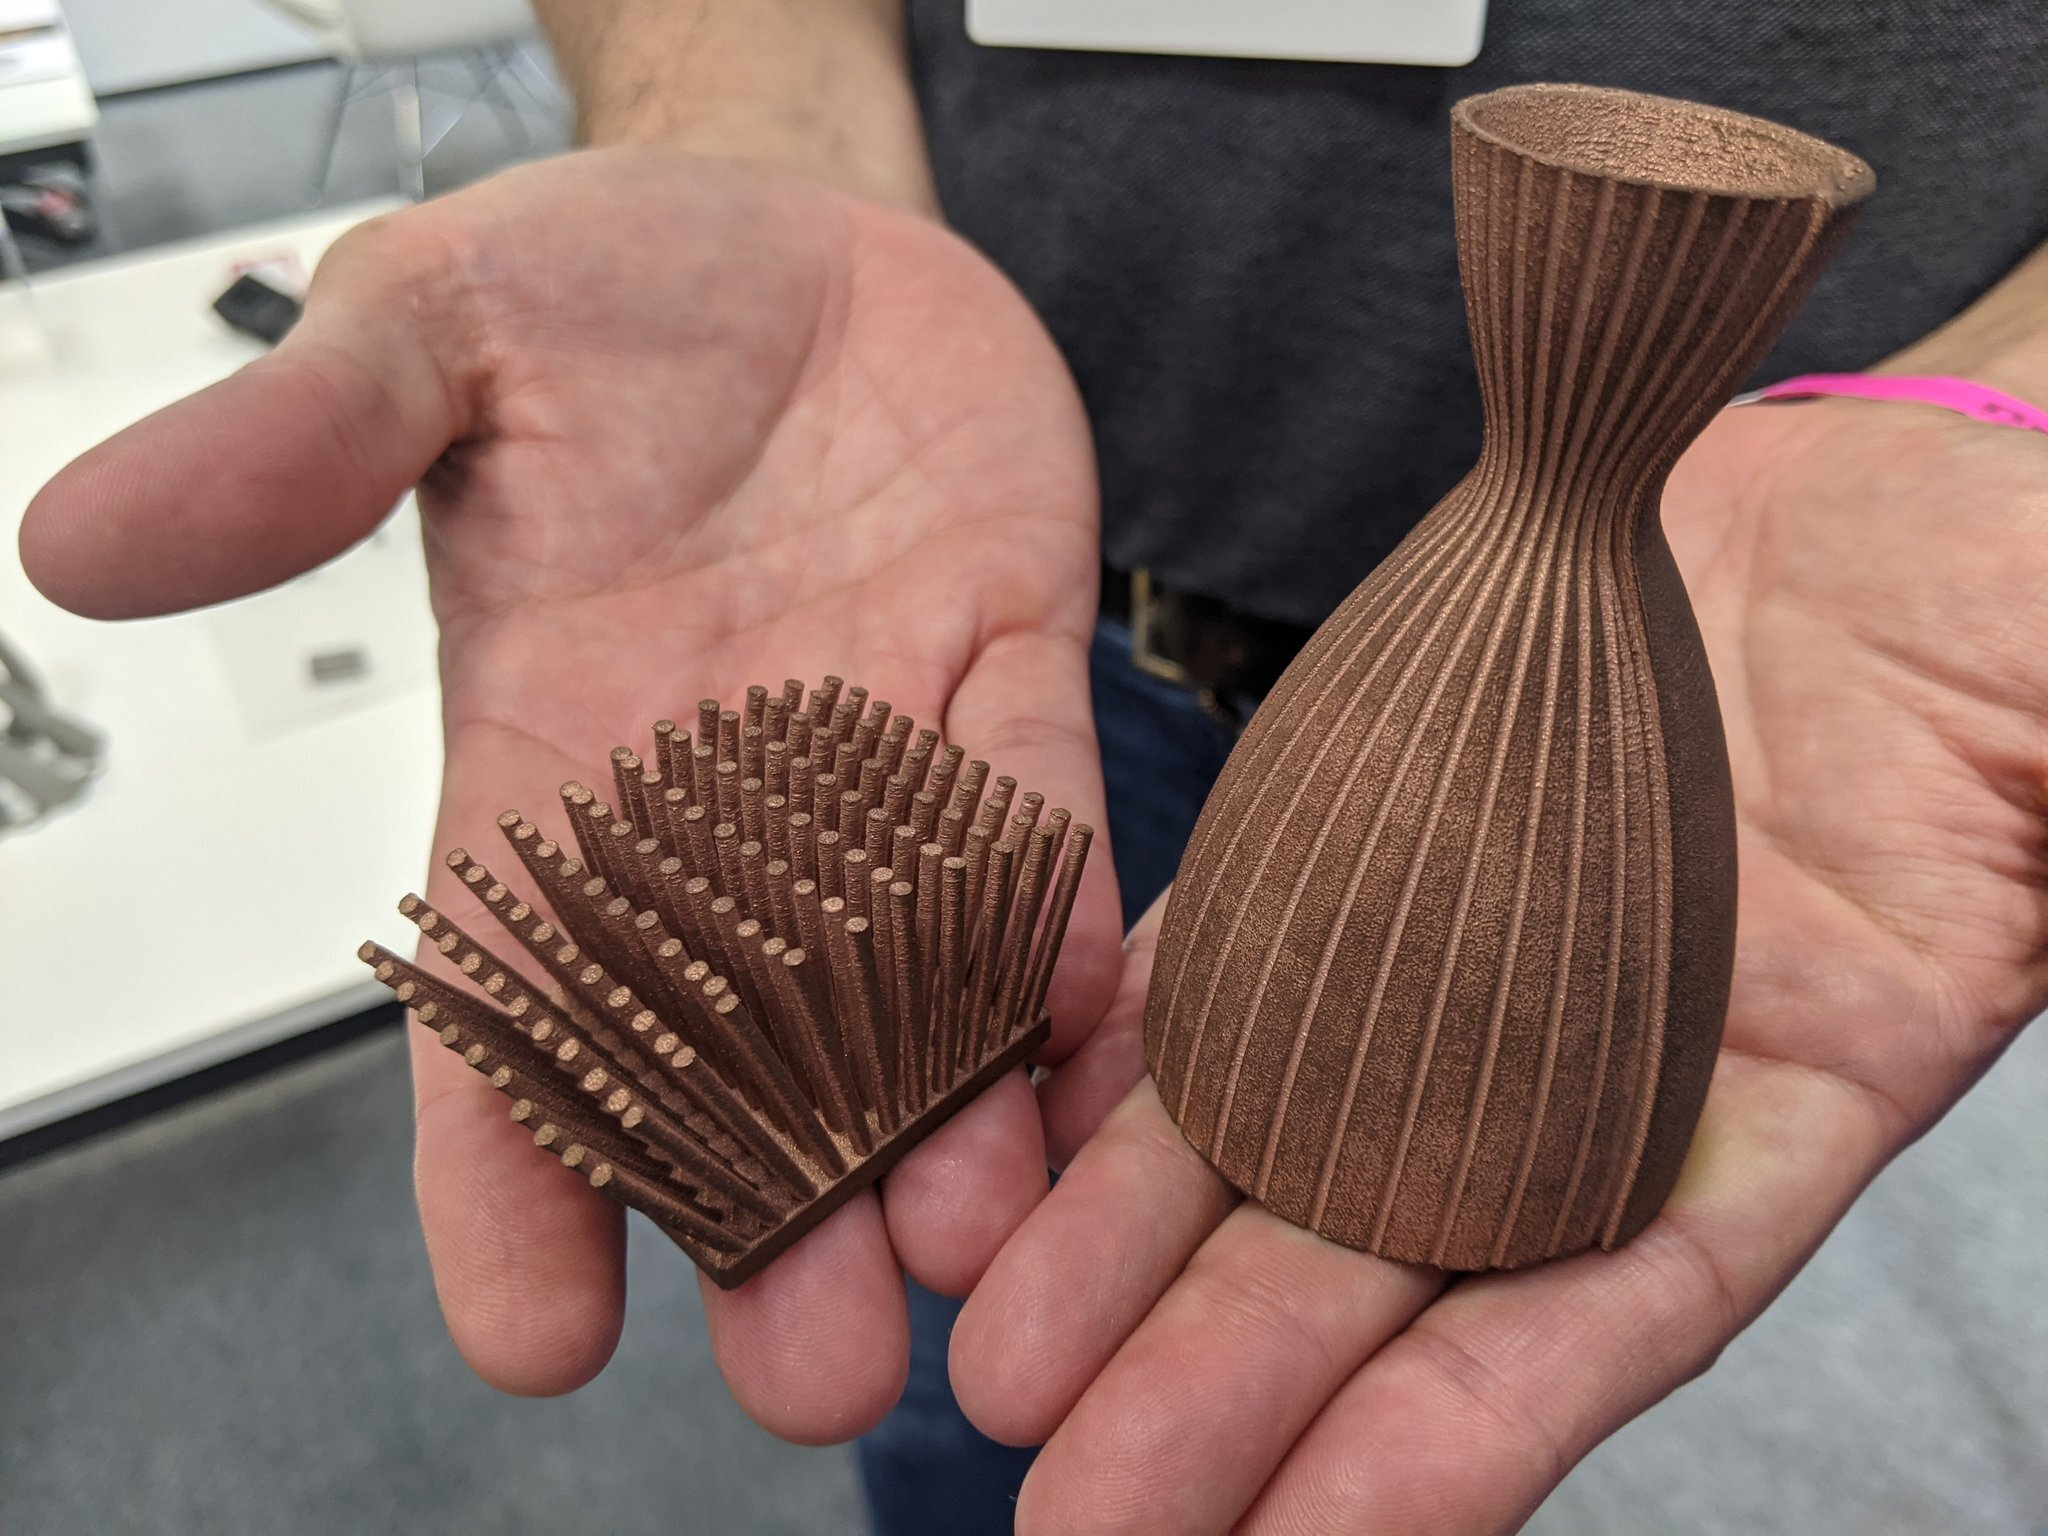 Metal 3D printing in copper from Xact Metal at TCT 3Sixty. Photo via Michael Petch/3D Printing Industry.